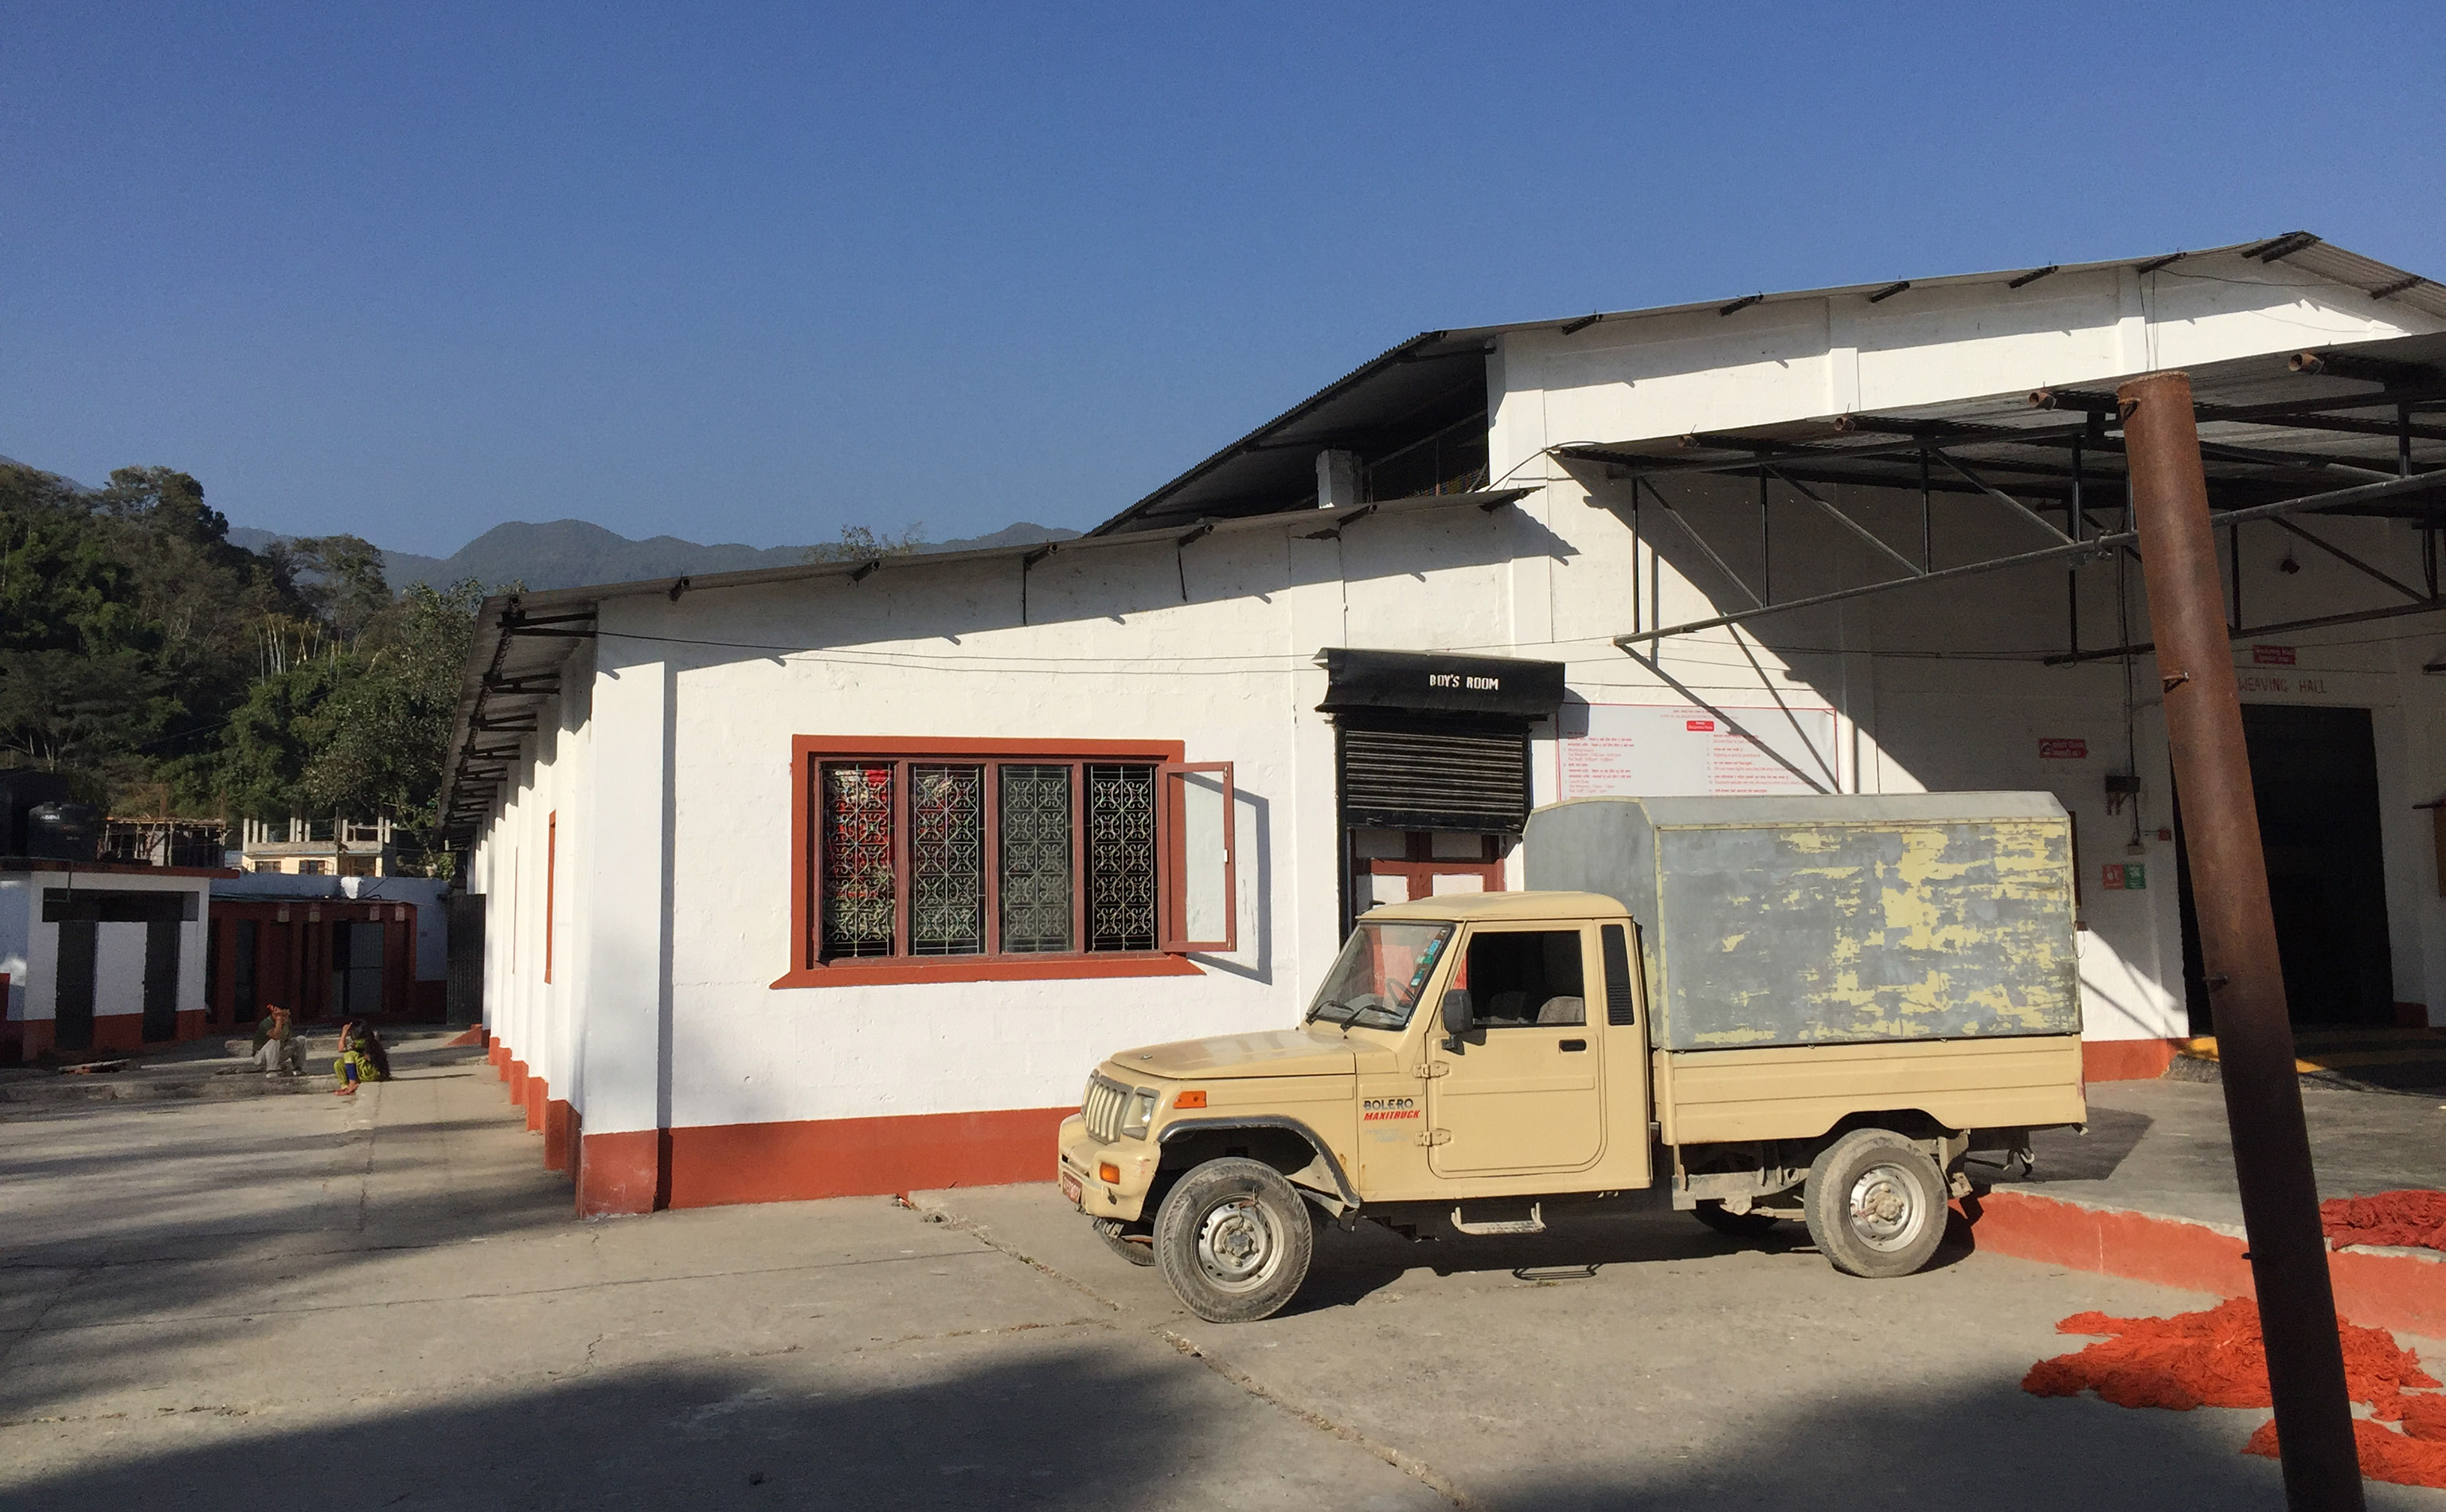 The manufactory of Jan Kath on the outskirts of Kathmandu, Nepal where the rugs for the 'Crossroads and Avenues' project are being made. | Image taken by The Ruggist while inspecting the facility in November 2016.